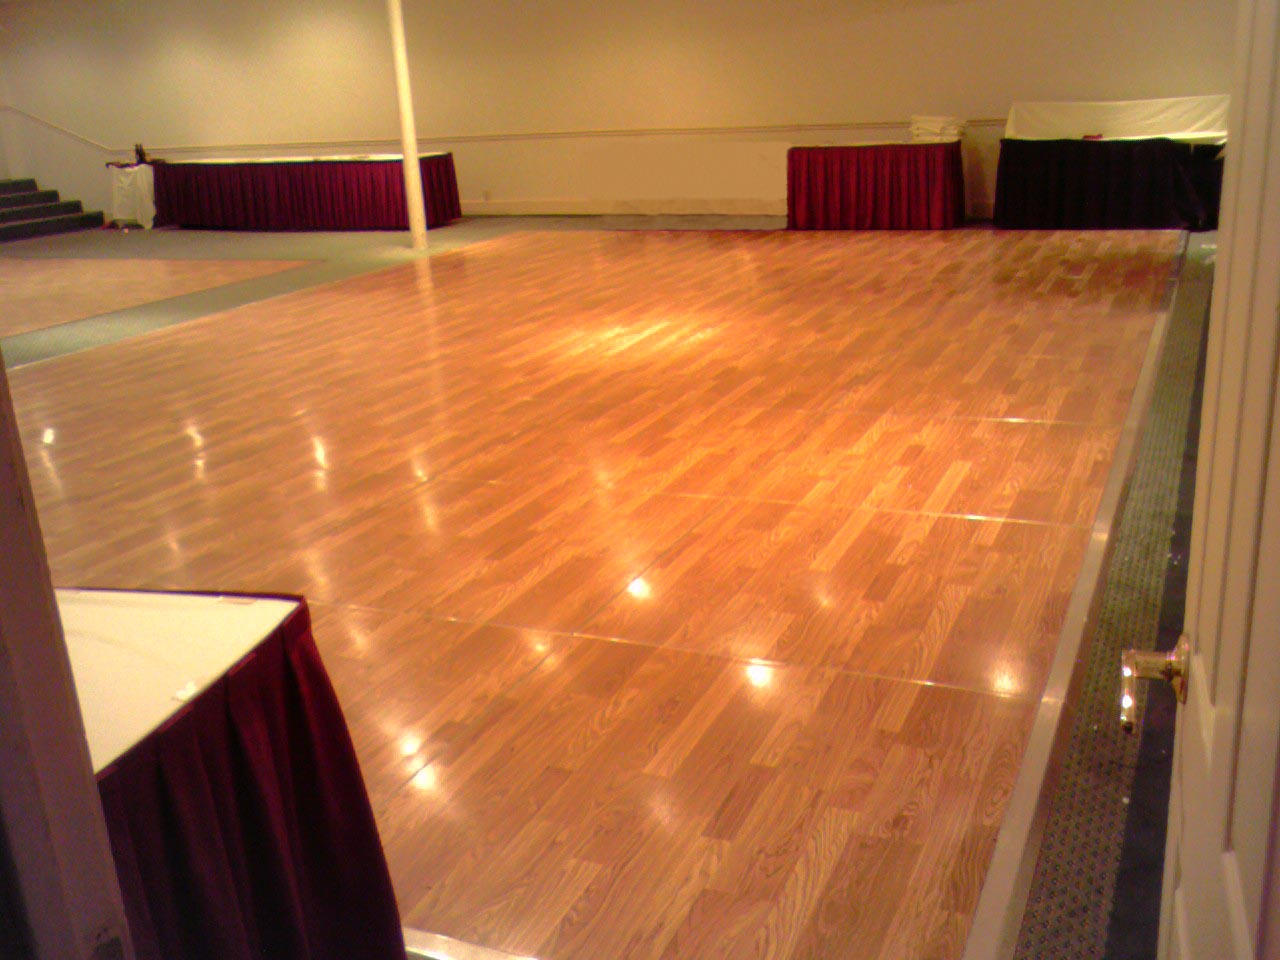 Dance floor rental for 1234 everybody on the dance floor